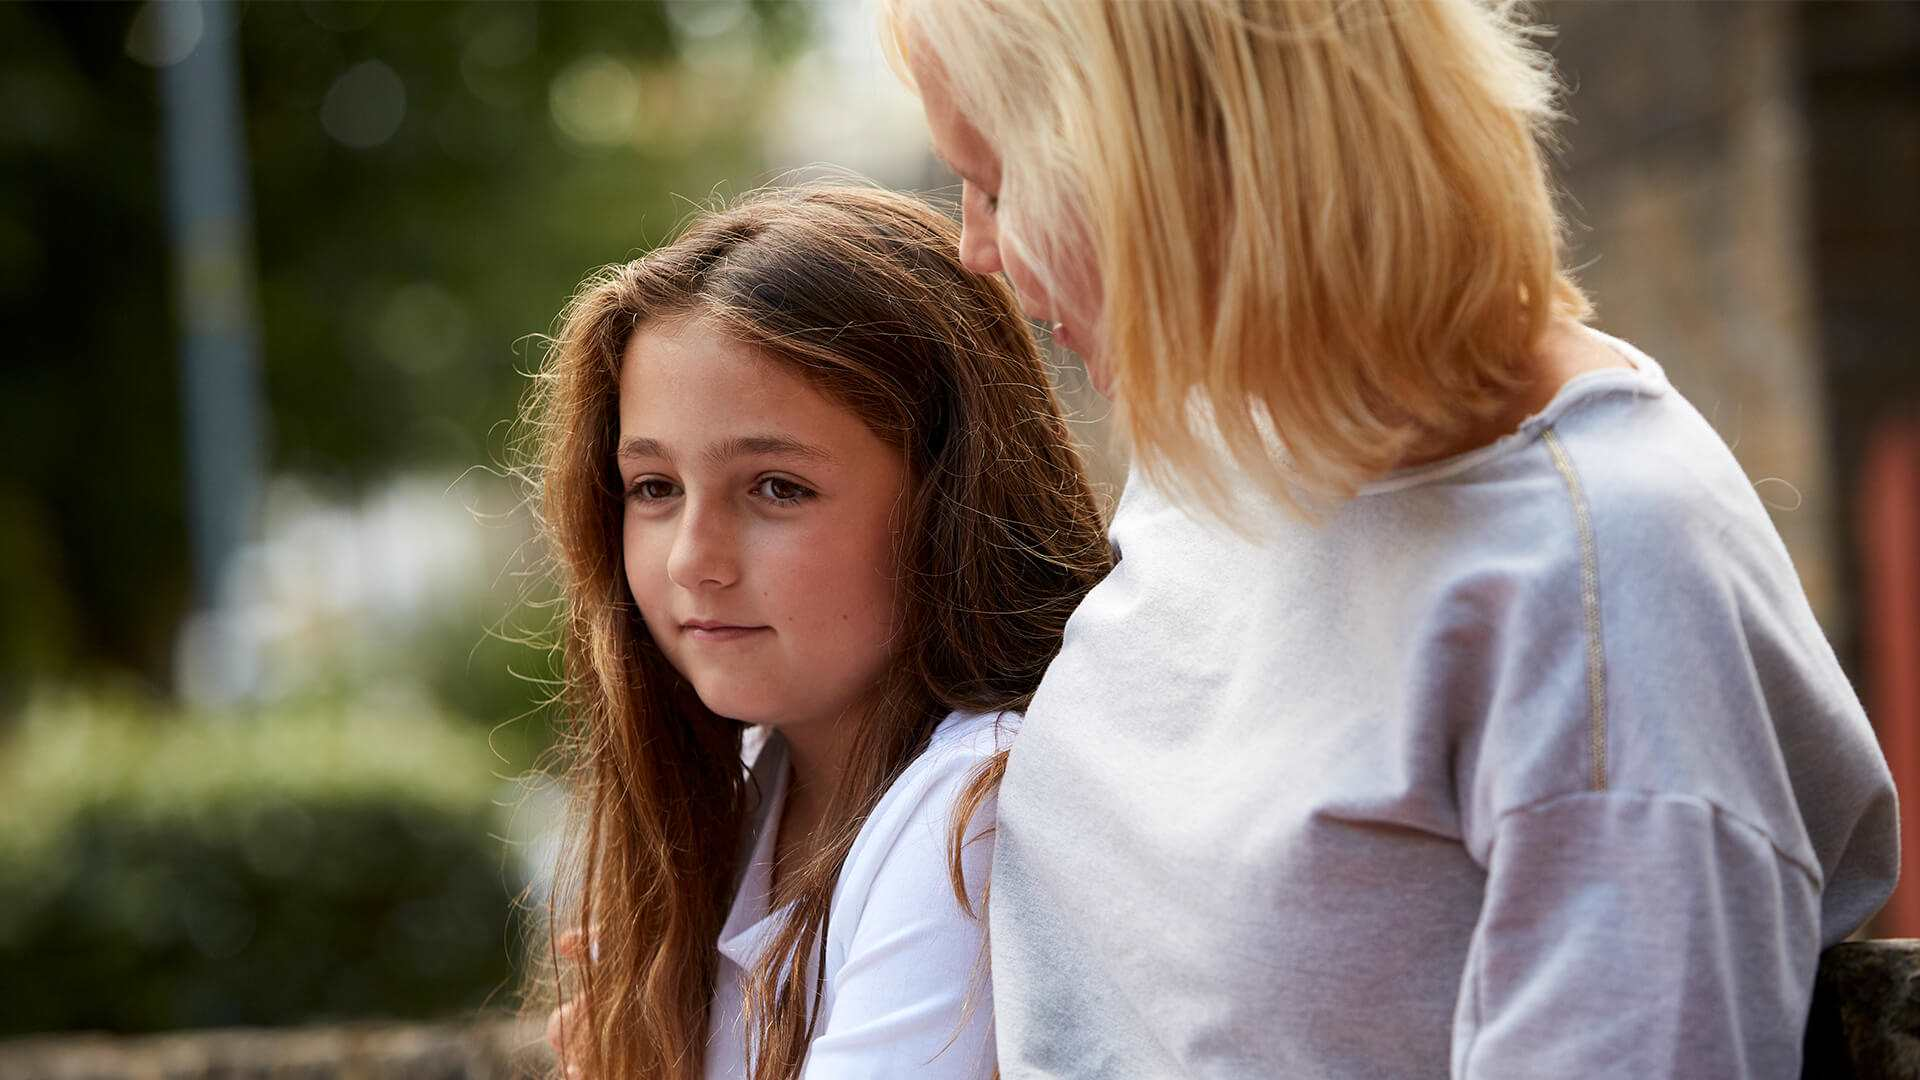 School Anxiety & Refusal | Parents Guide To Support | YoungMinds